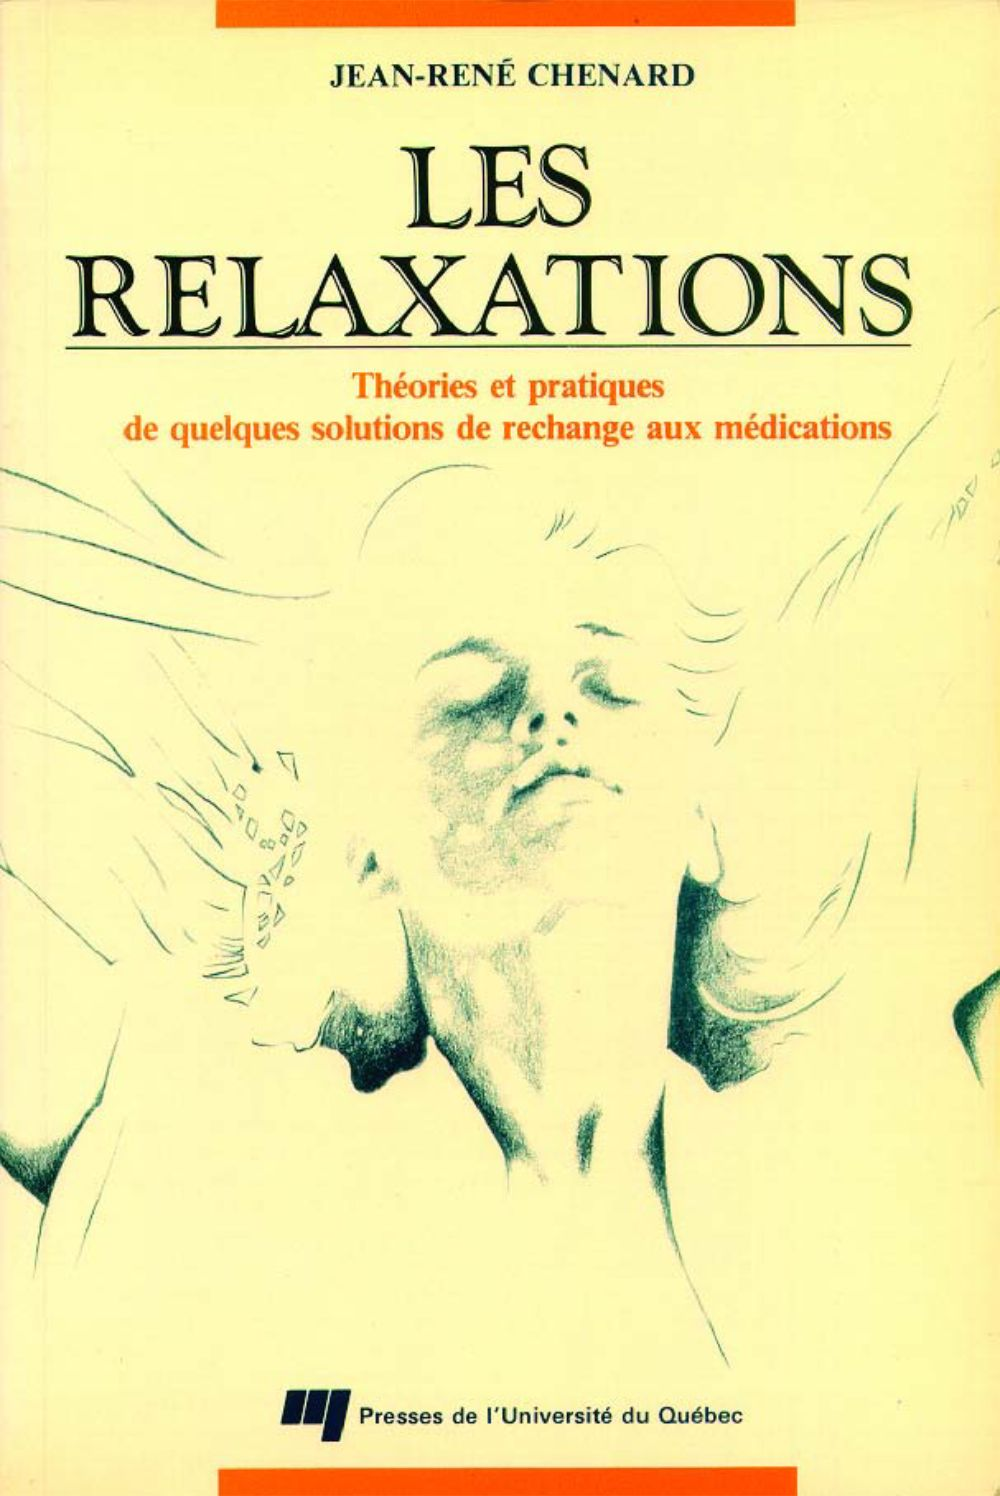 Les relaxations